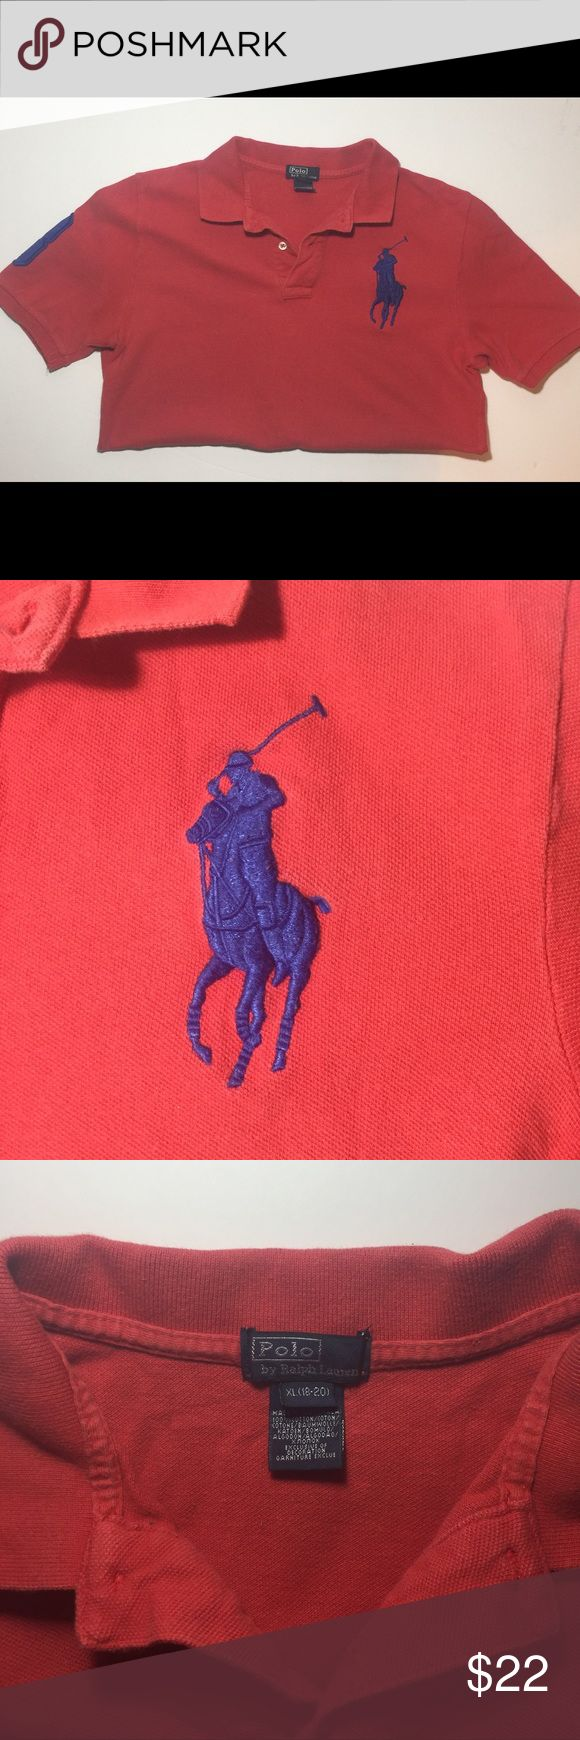 Polo by Ralph Lauren Collared Polo Shirt(XL 18-20) Polo by Ralph Lauren Collared Polo Shirt(XL 18-20). This shirt is in great condition. No stretching, no stains and no odors. Polo by Ralph Lauren Shirts & Tops Polos